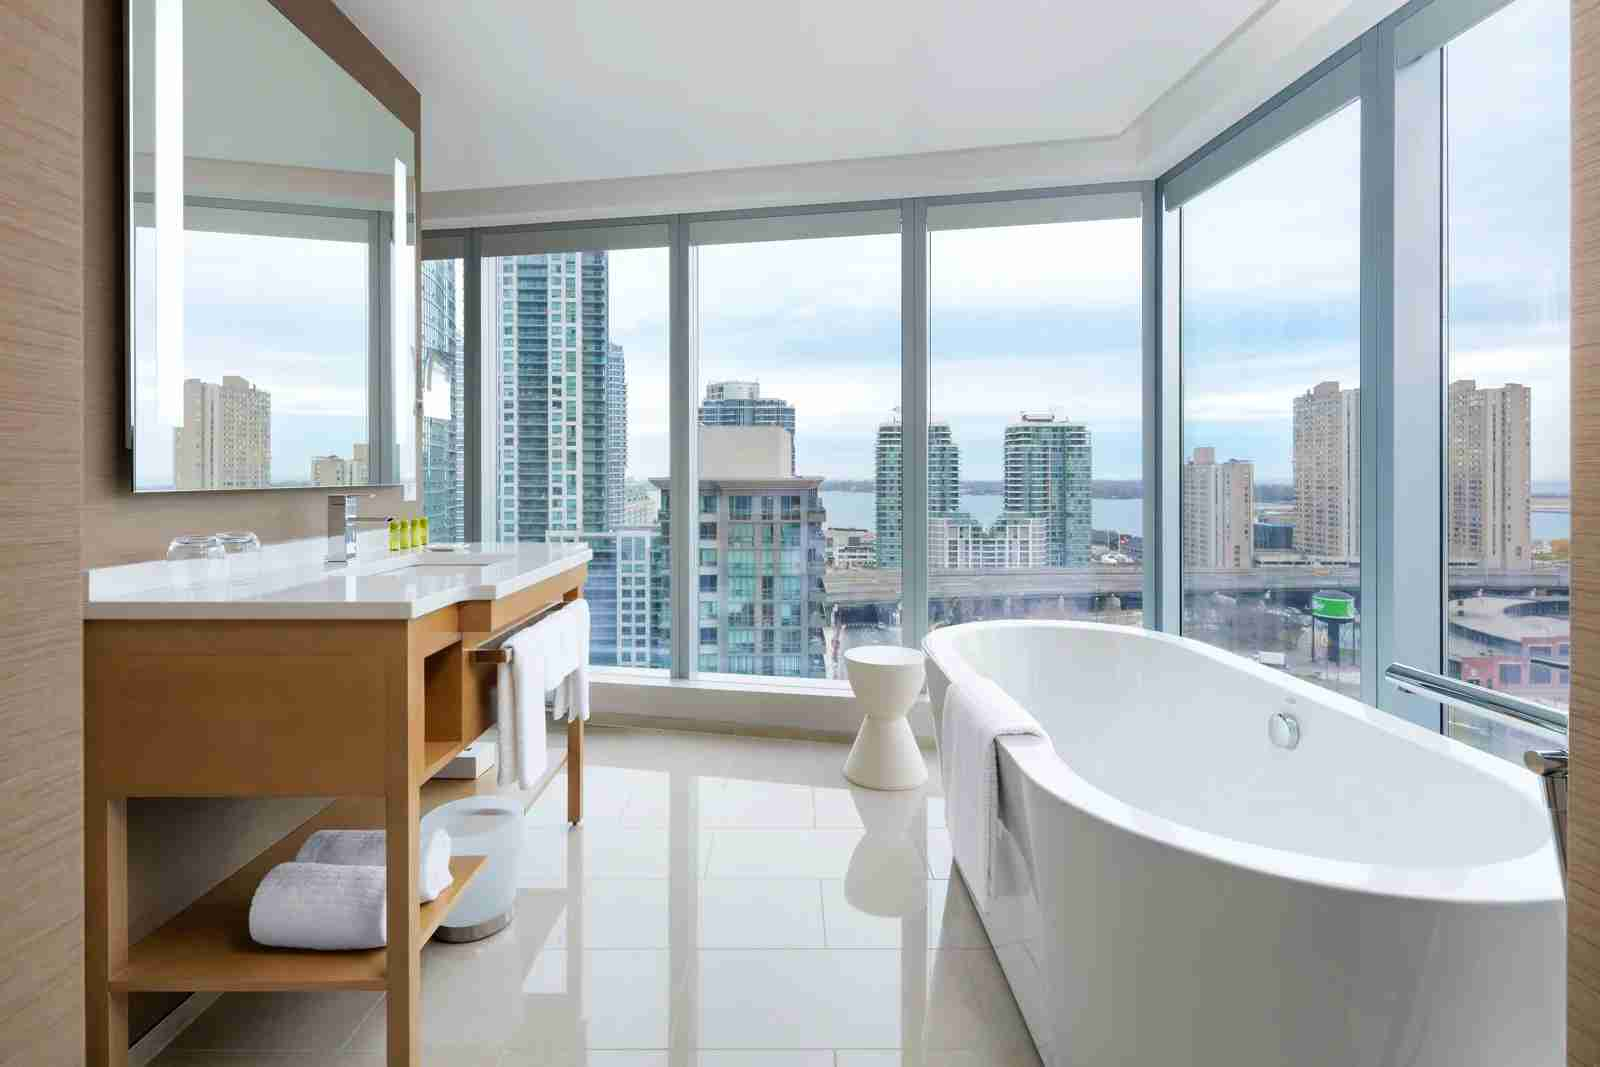 The Delta Toronto Corner Skyline Soaker room. (Photo courtesy Delta Hotels)